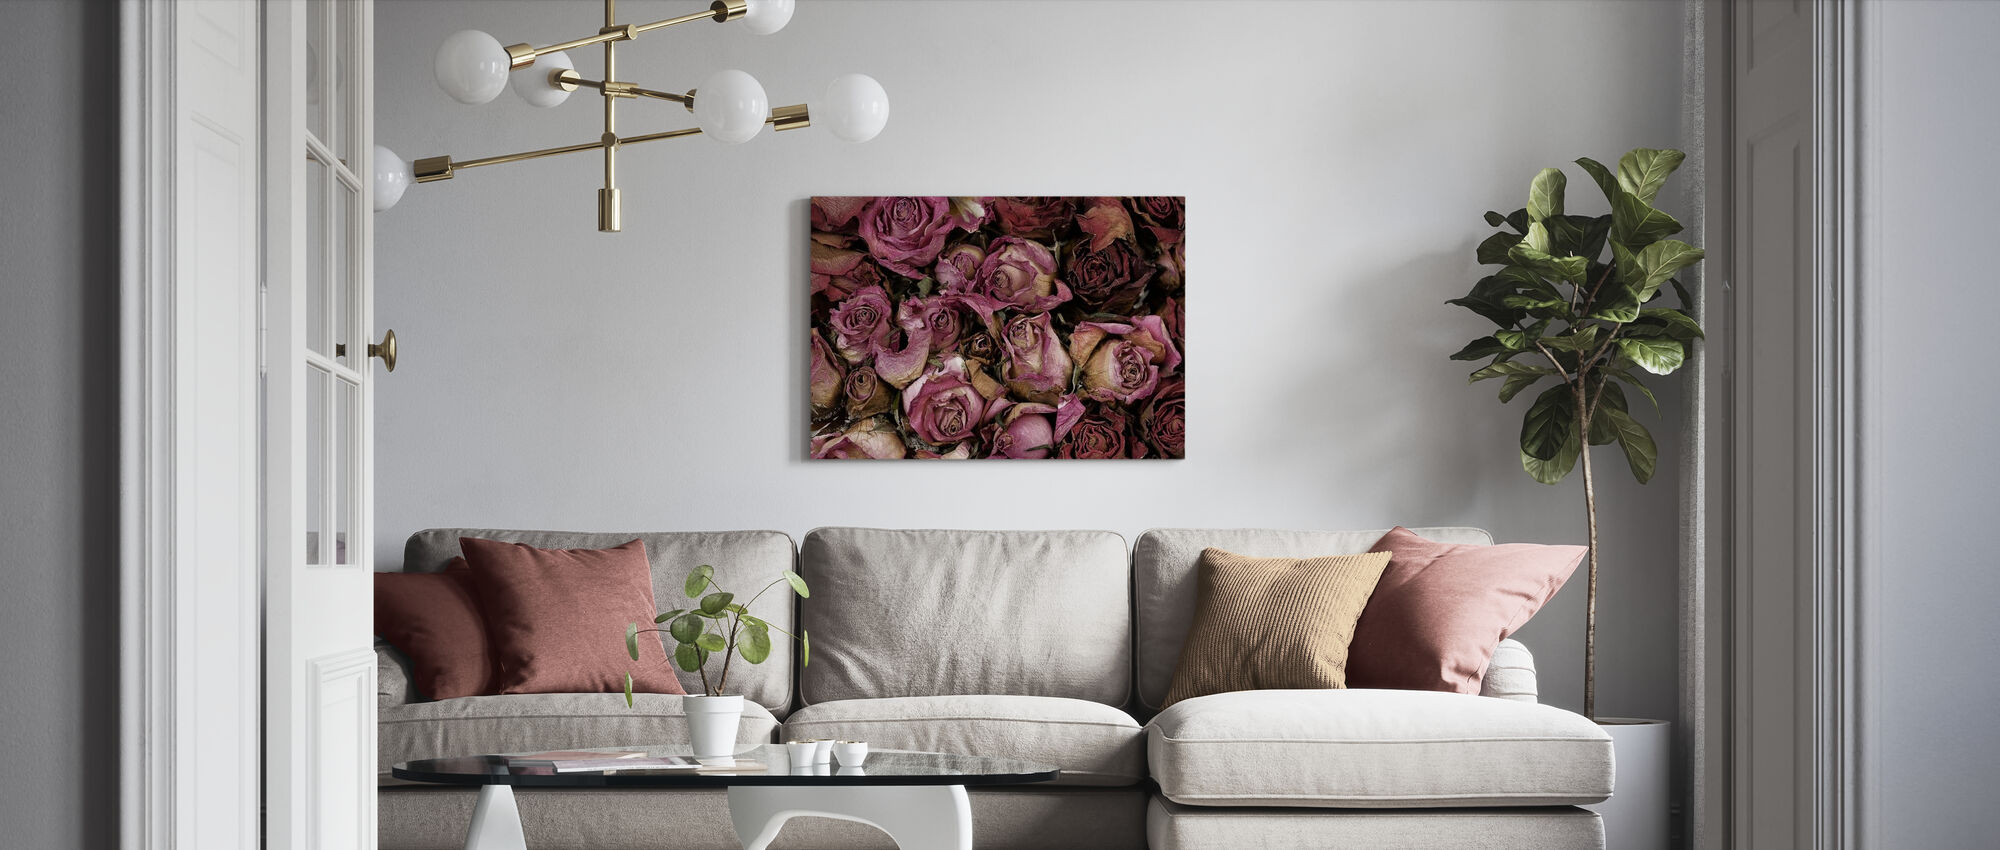 Dried Roses - Canvas print - Living Room